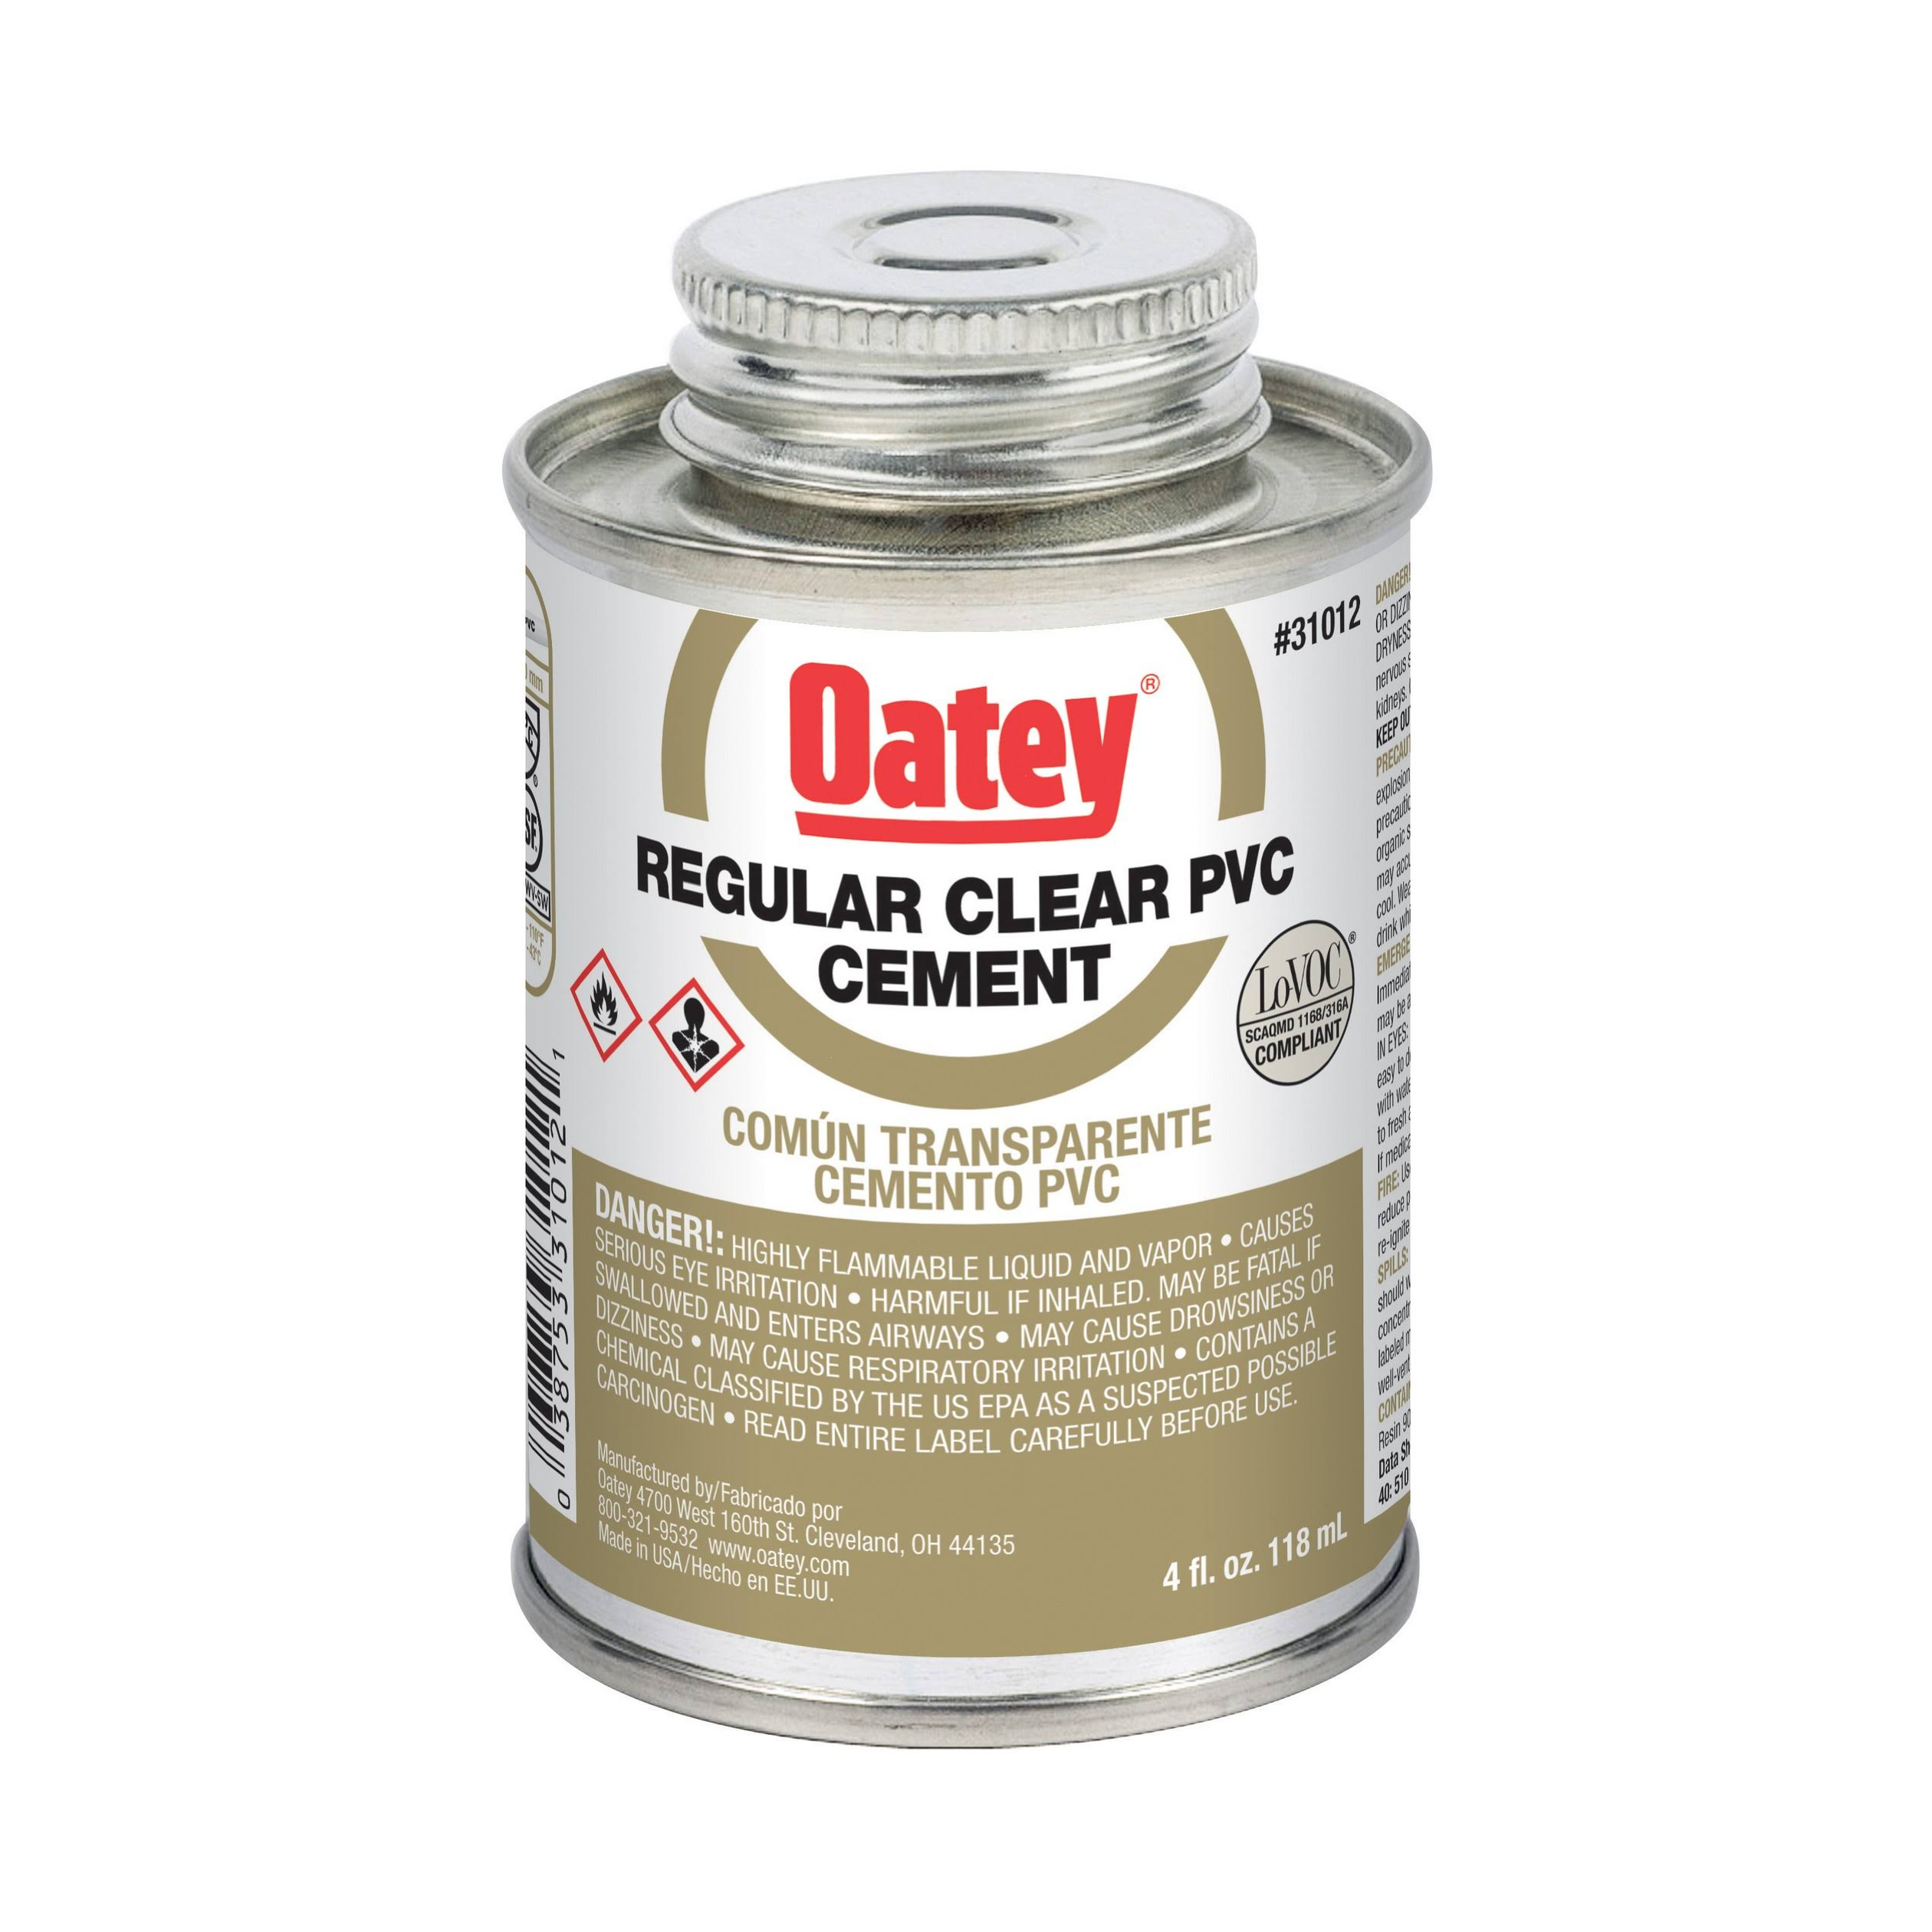 Oatey Medium Gray Pvc Cement - 8oz